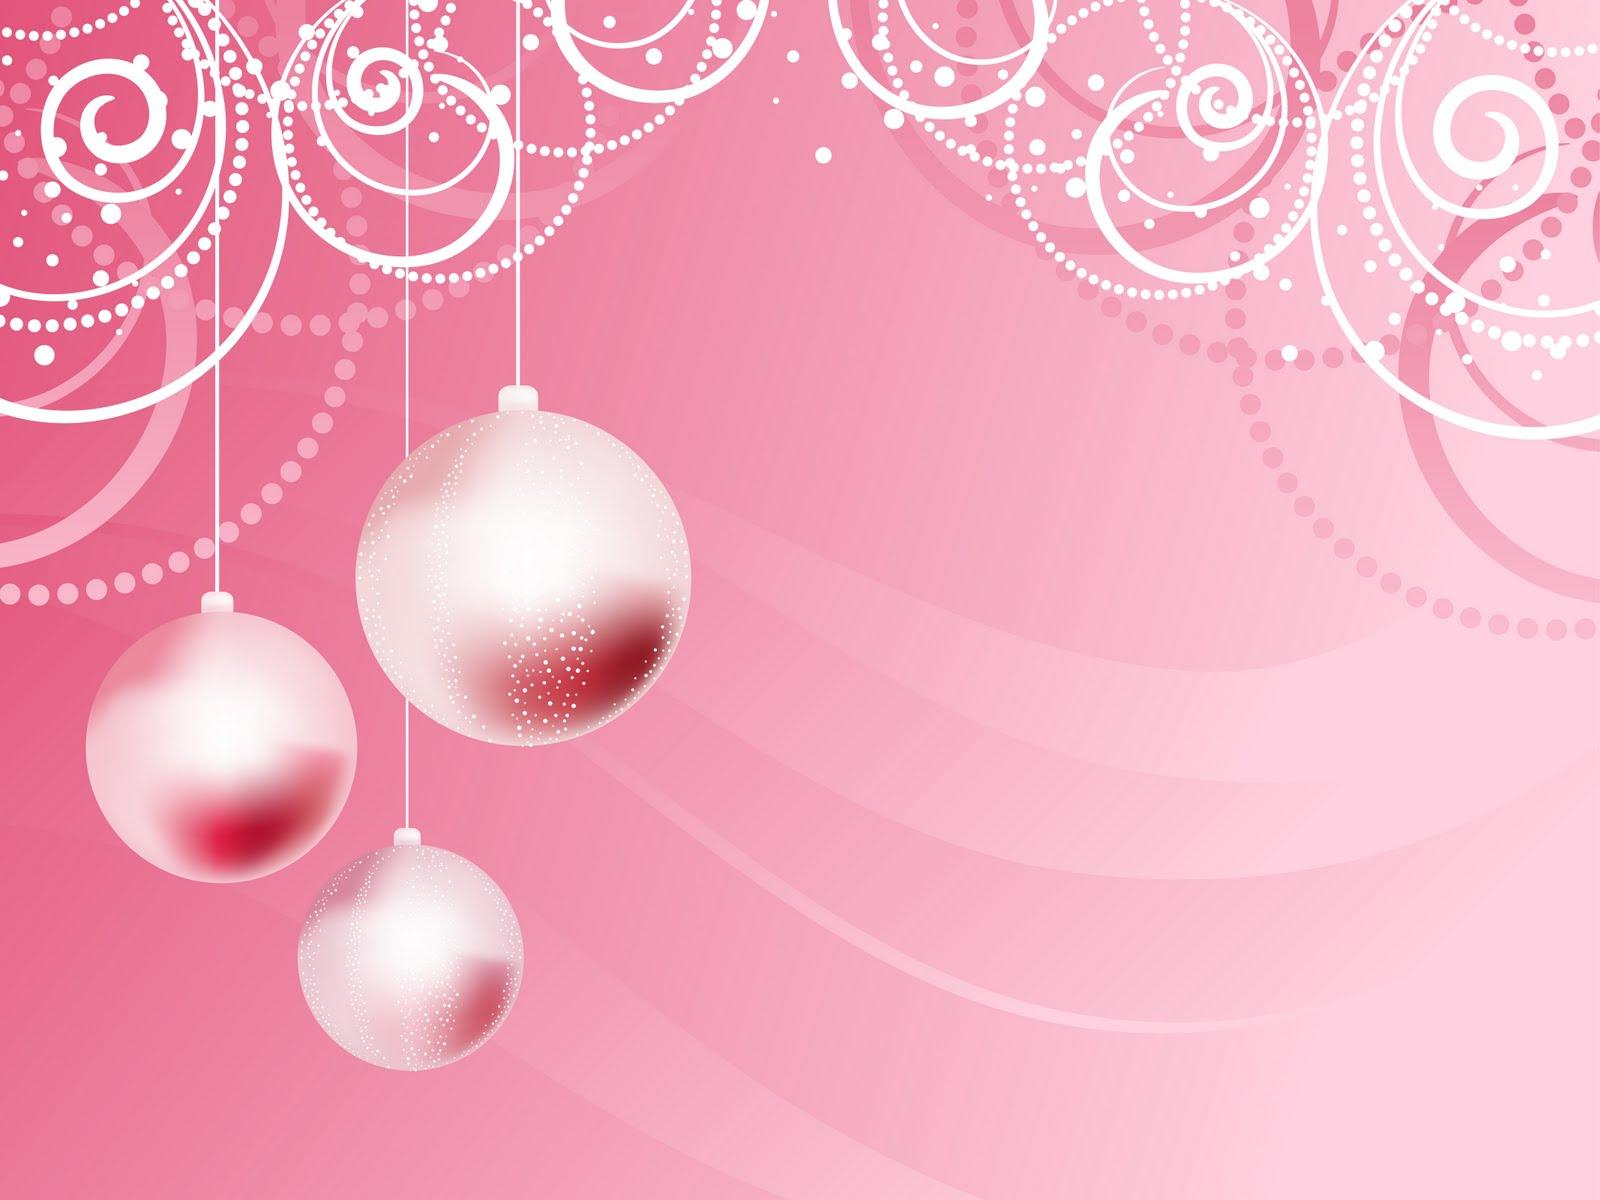 Backgrounds For Christmas (33 Wallpapers) – Adorable Wallpapers